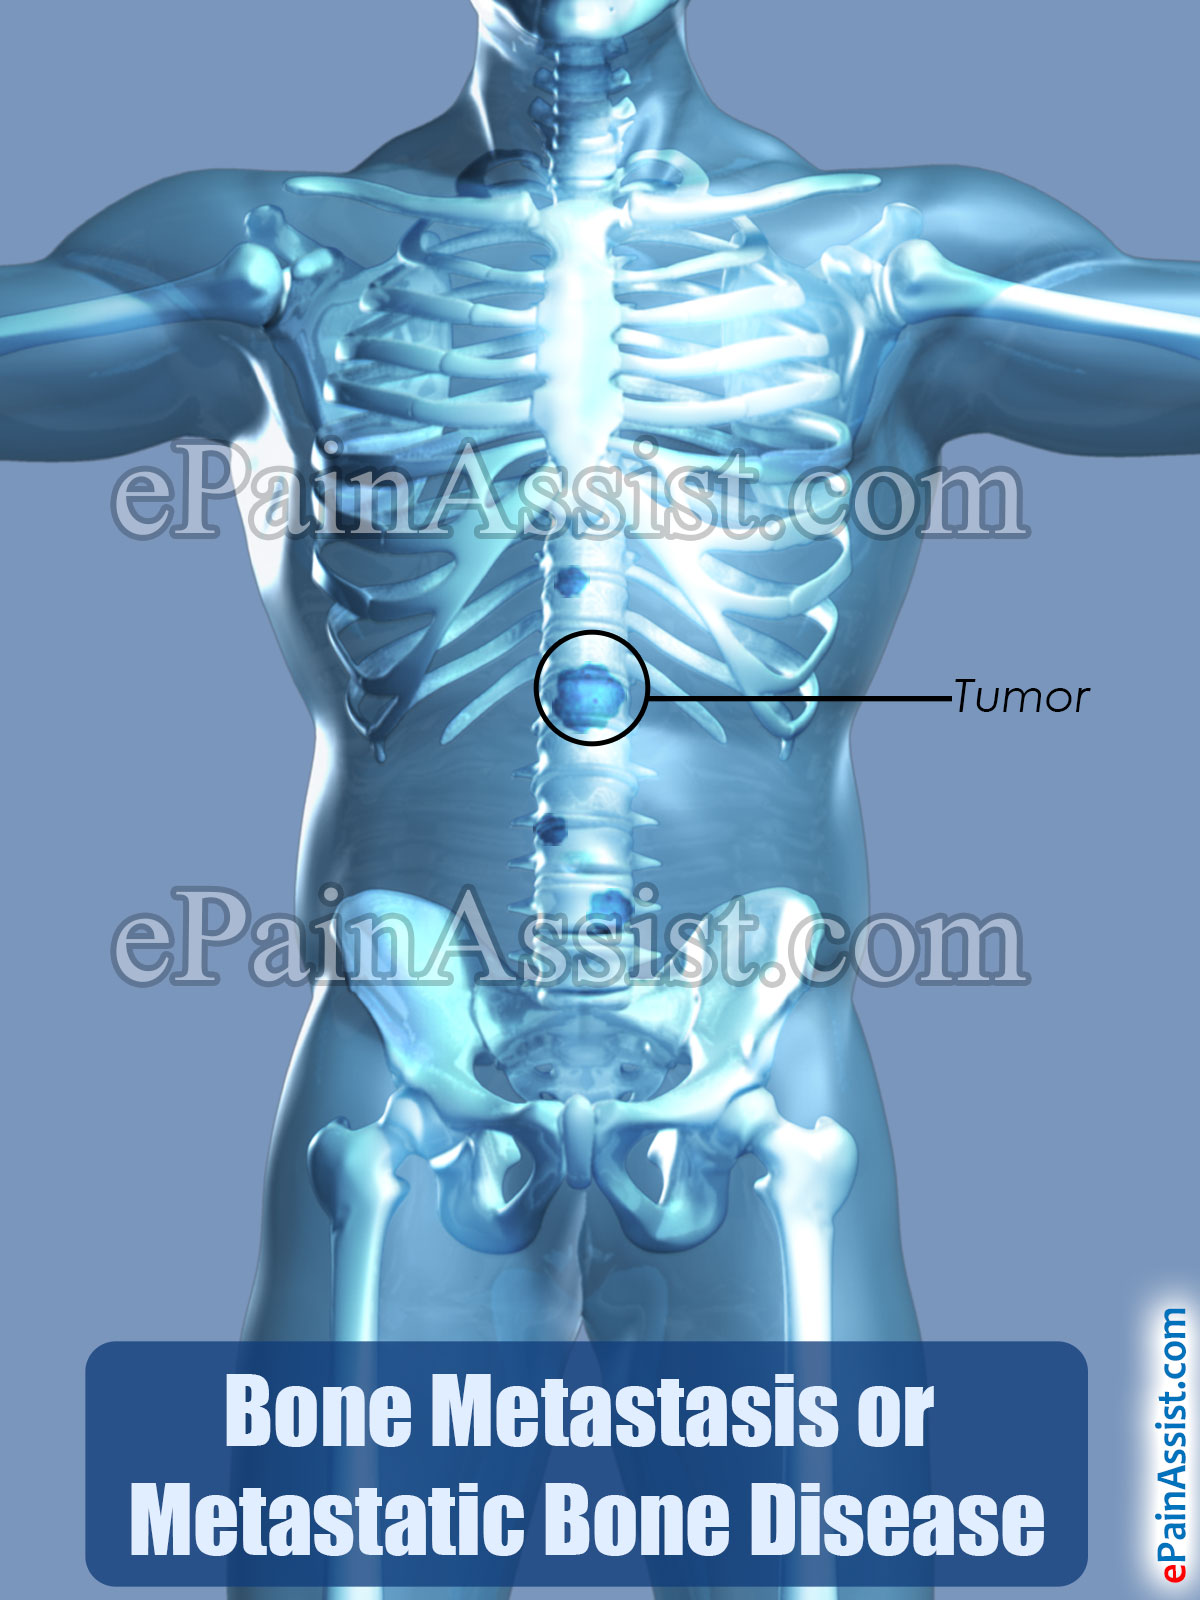 Bone Metastasis or Metastatic Bone Disease